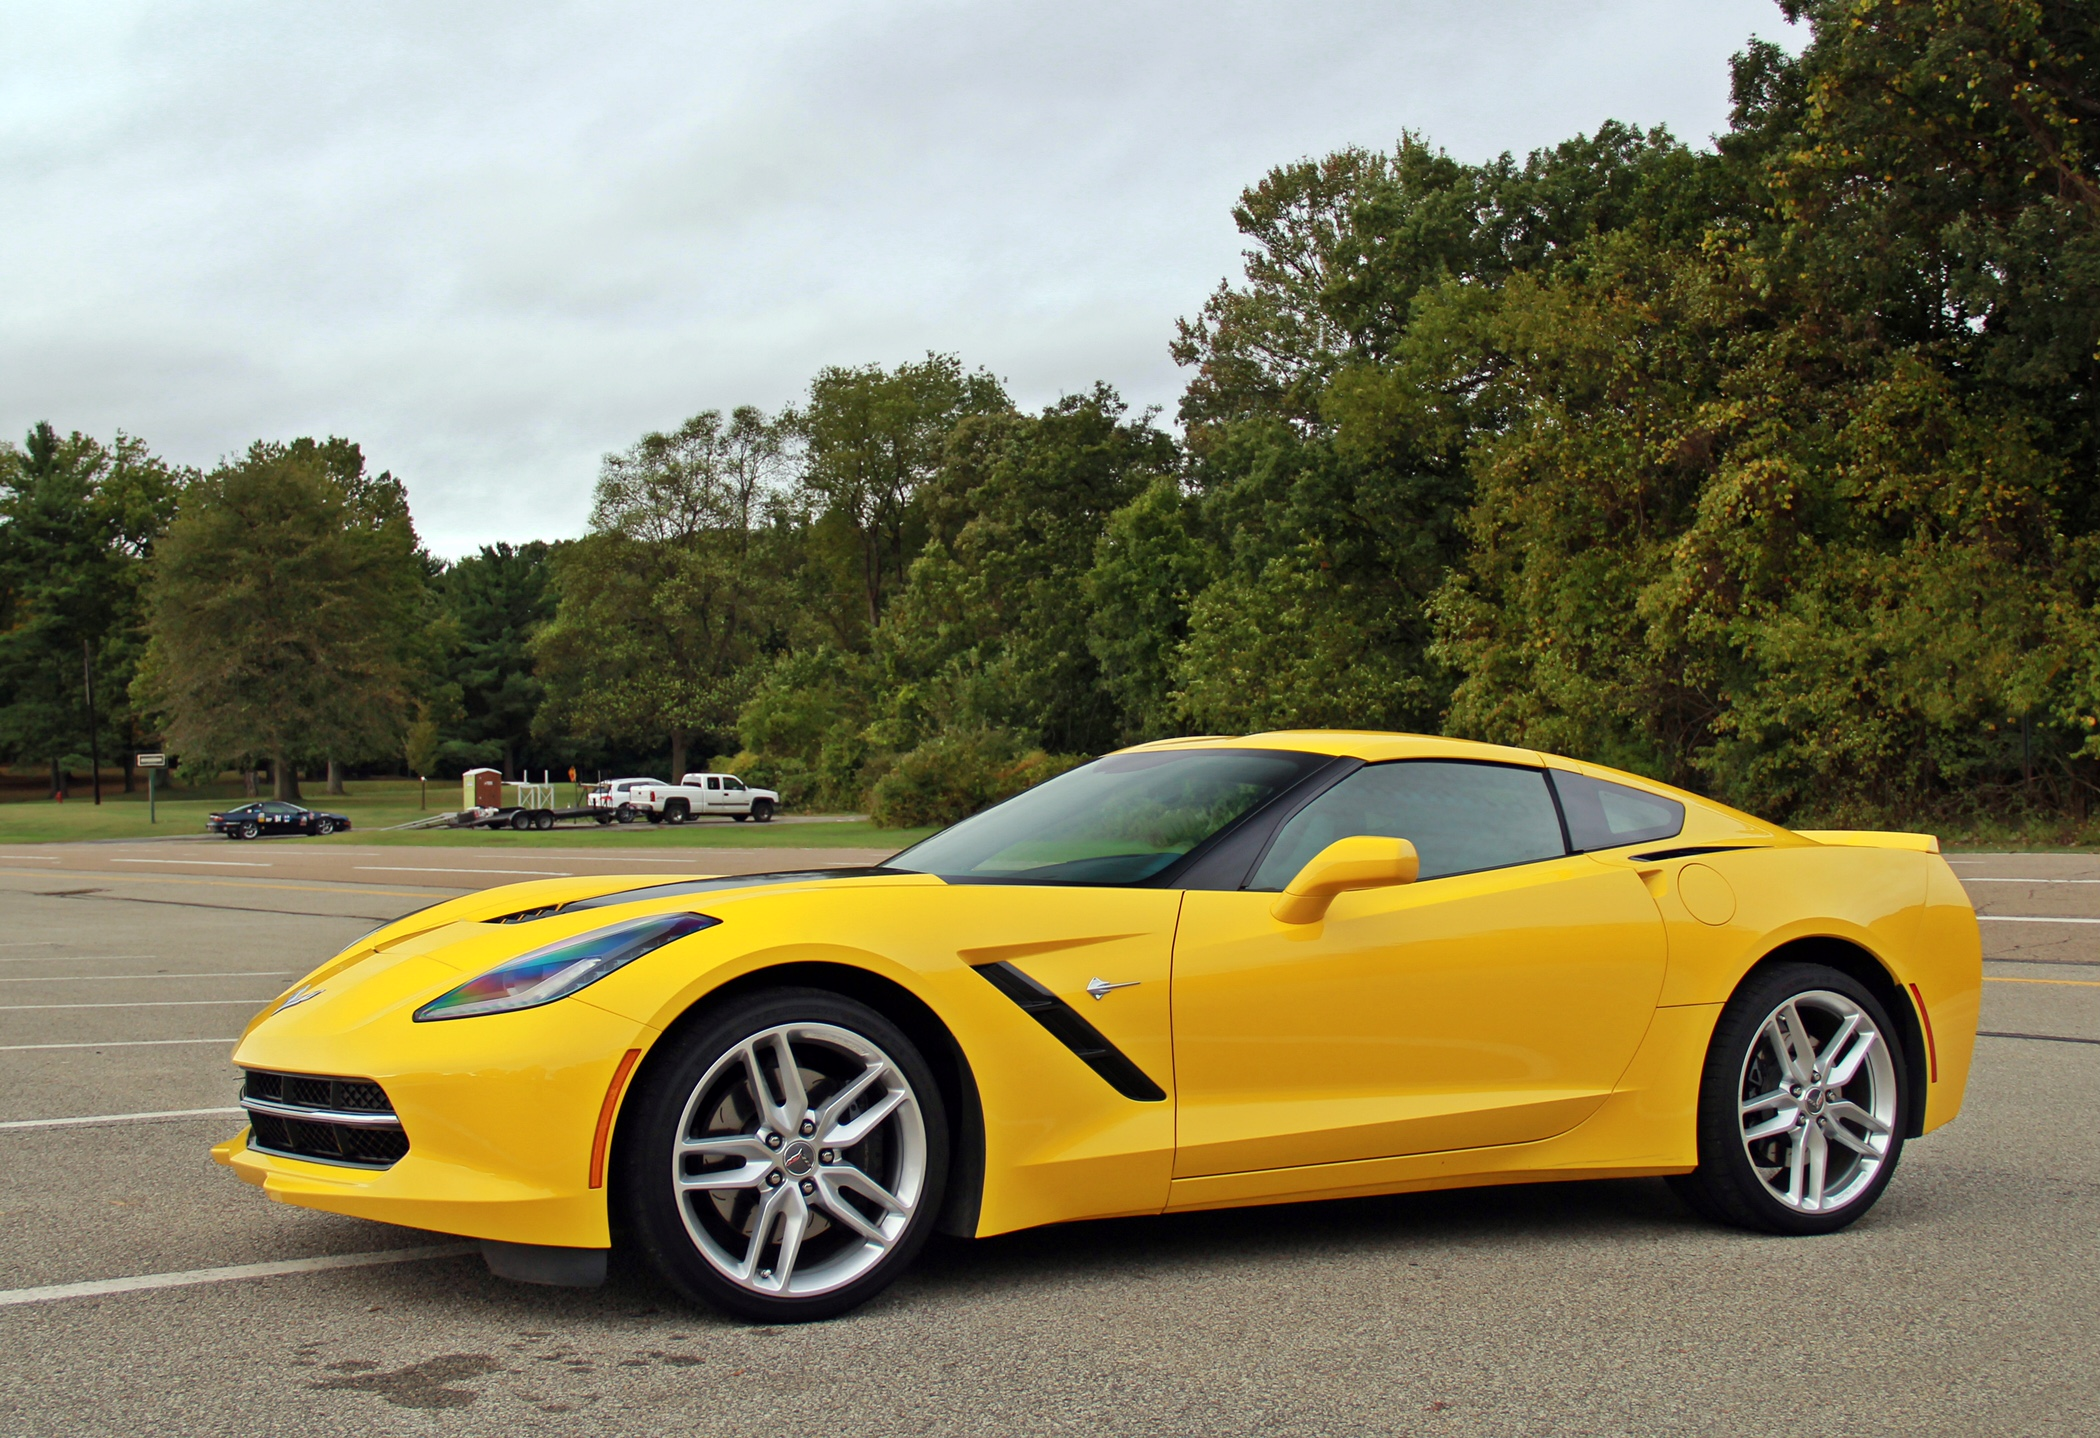 How many Corvette owners here? - Chevrolet, Cadillac ...